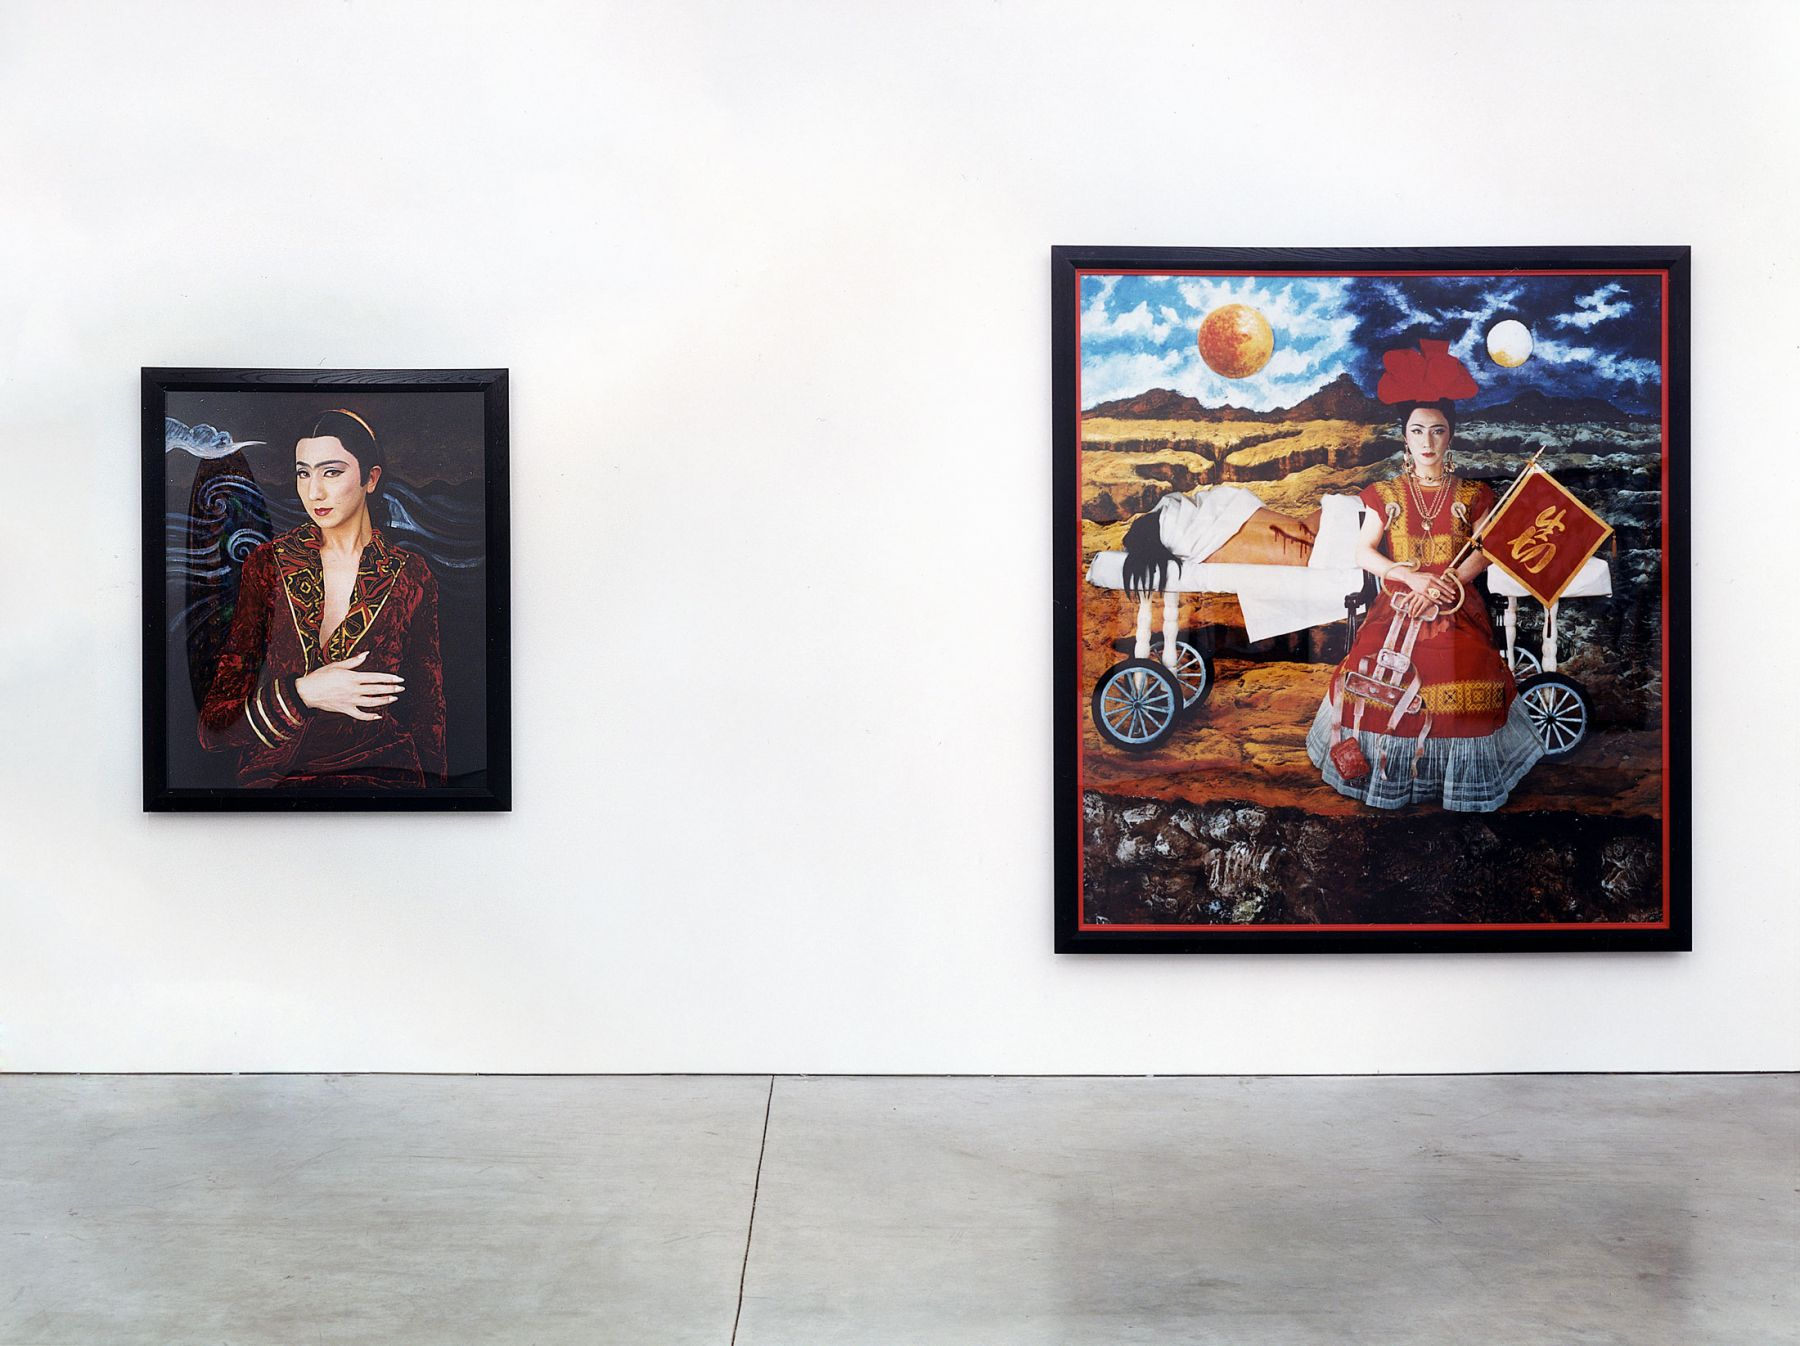 Yasumasa Morimura, Self-Portraits: An Inner Dialogue with Frida Kahlo